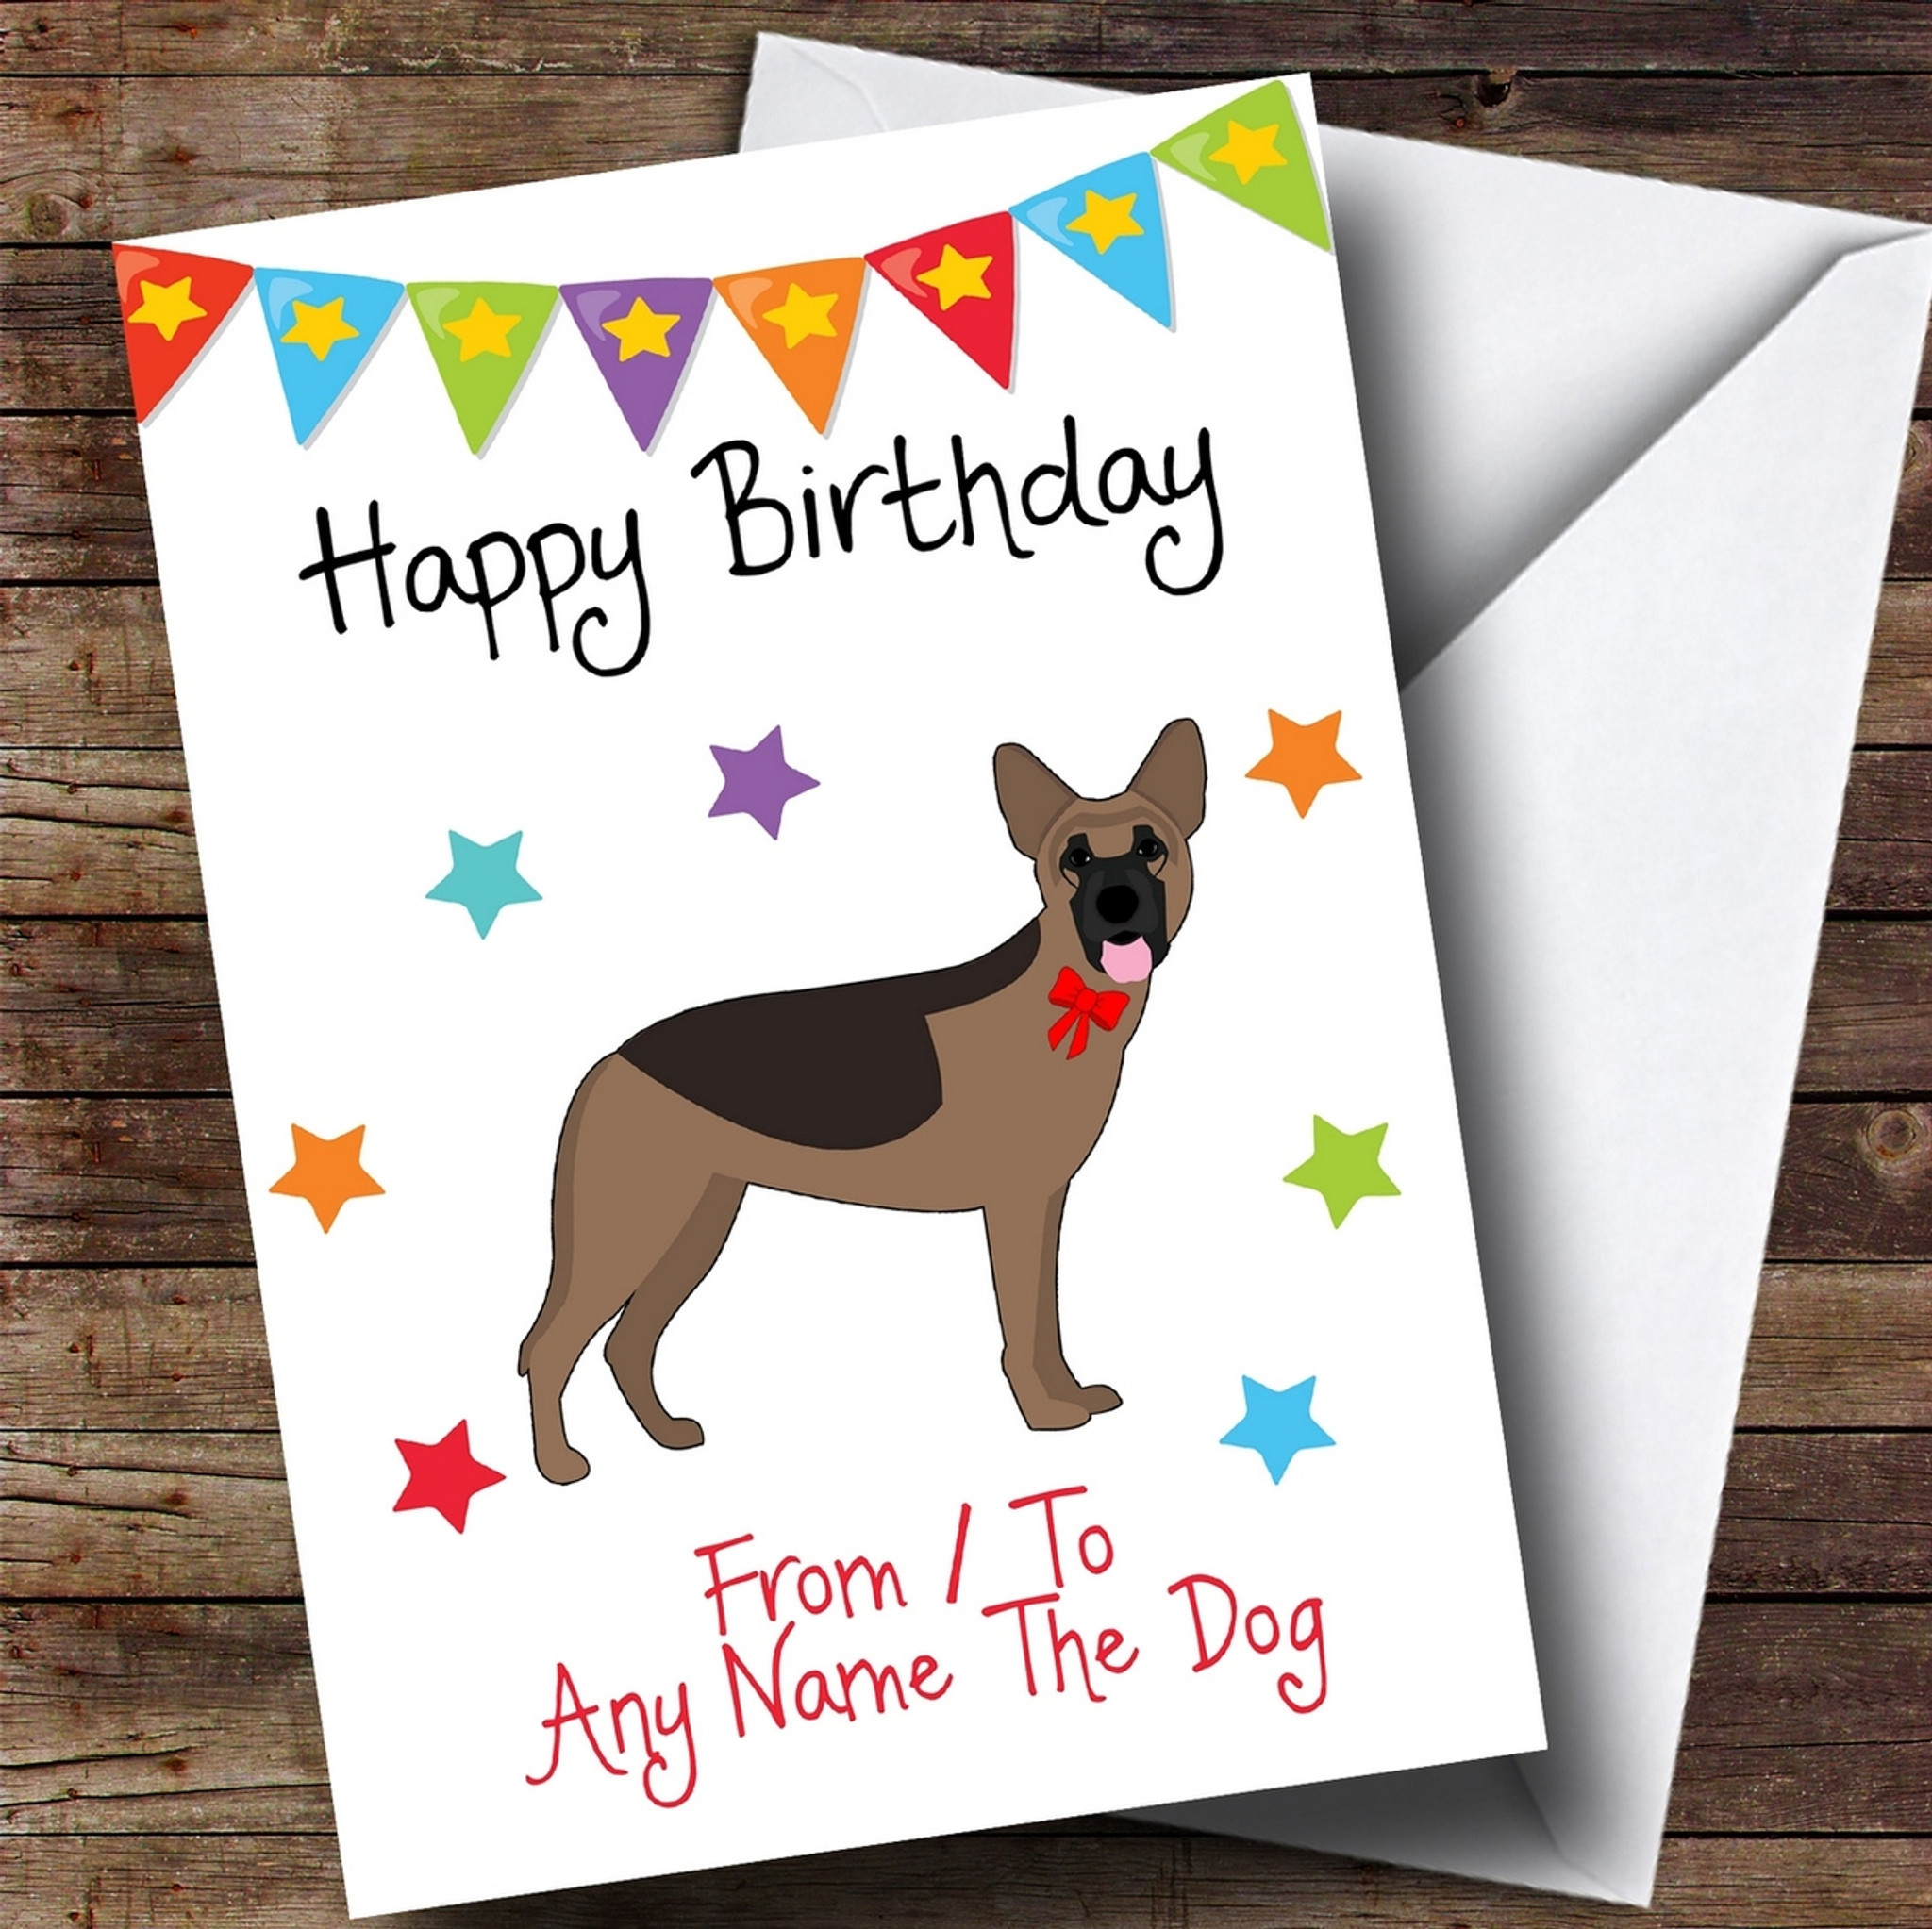 To From Pet Dog German Shepherd Customised Birthday Card